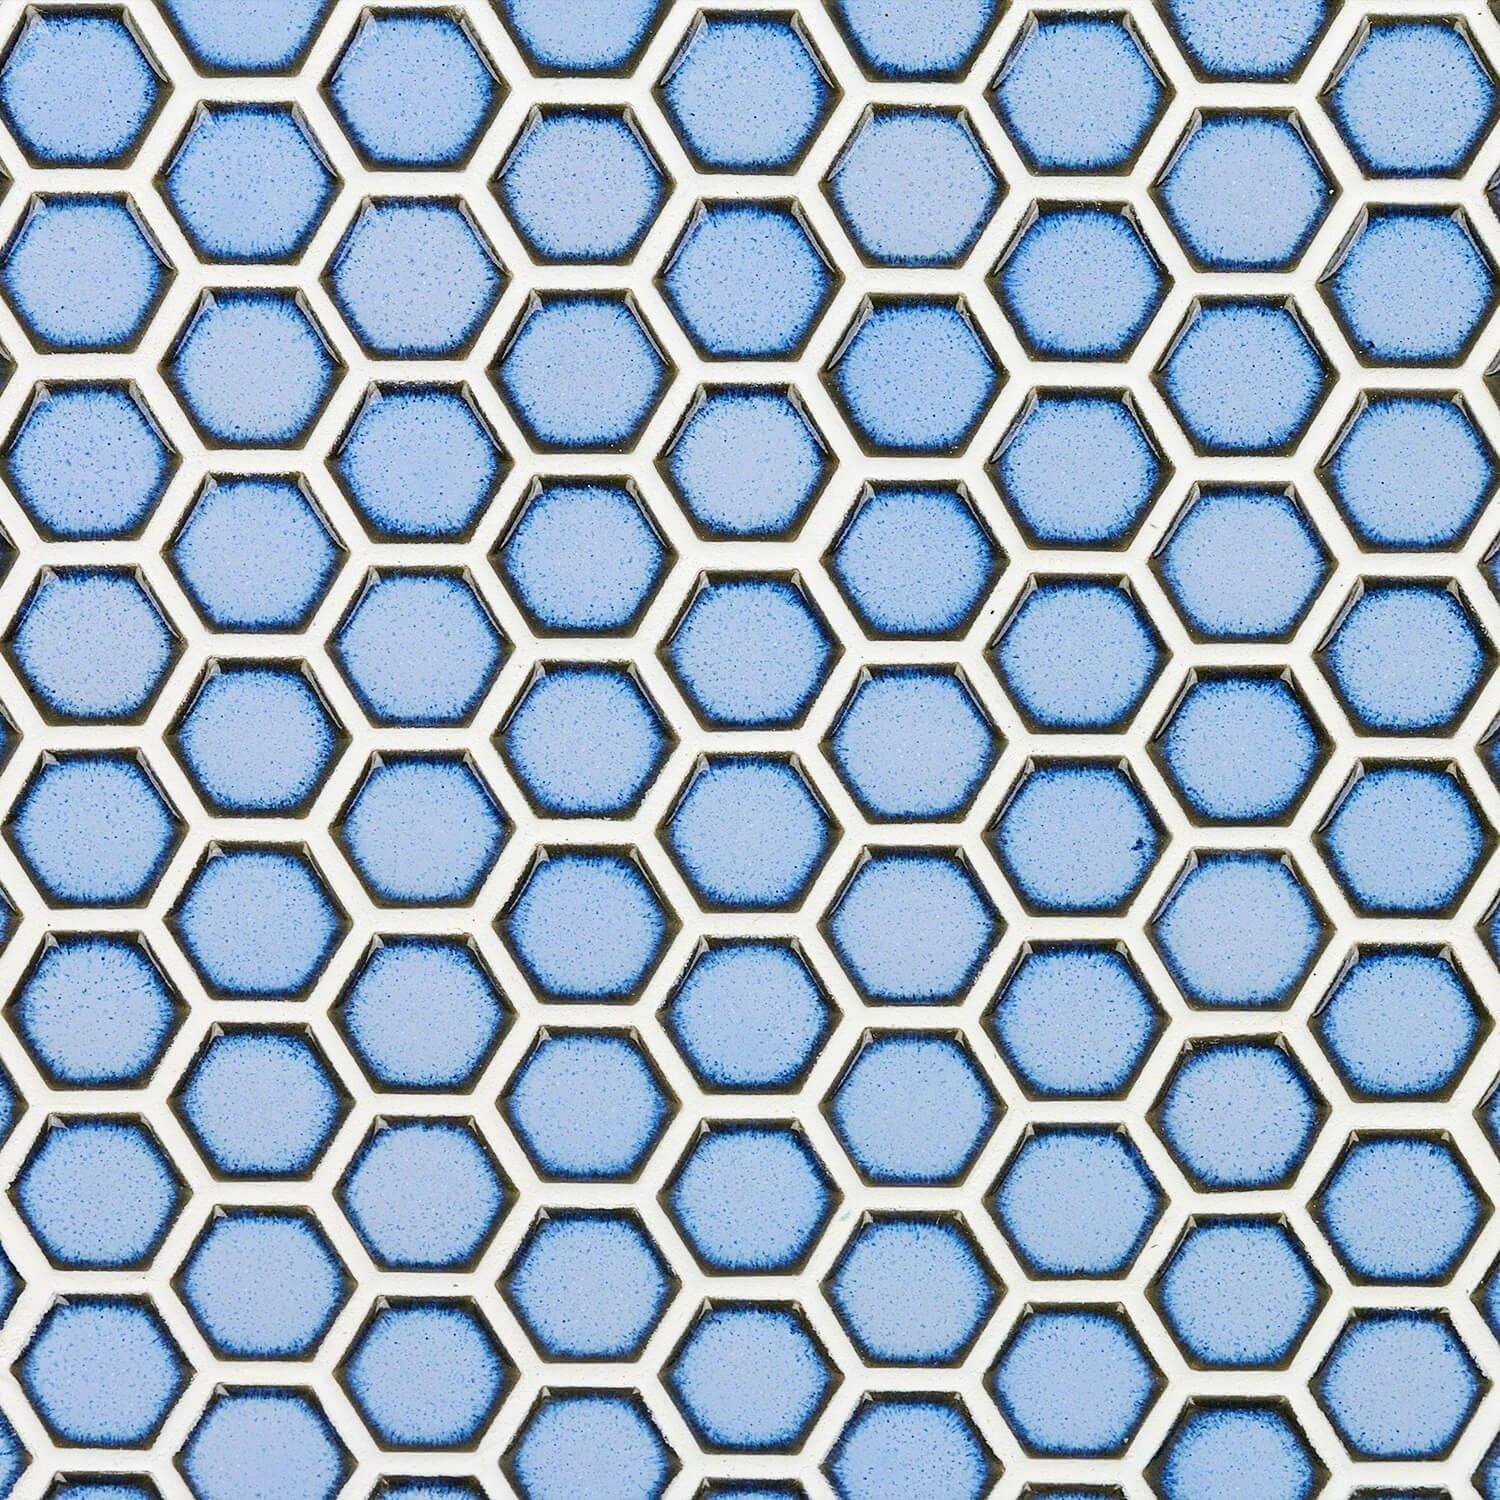 Eden Cloudy Sky Hexagon Polished Rimmed Ceramic Tile